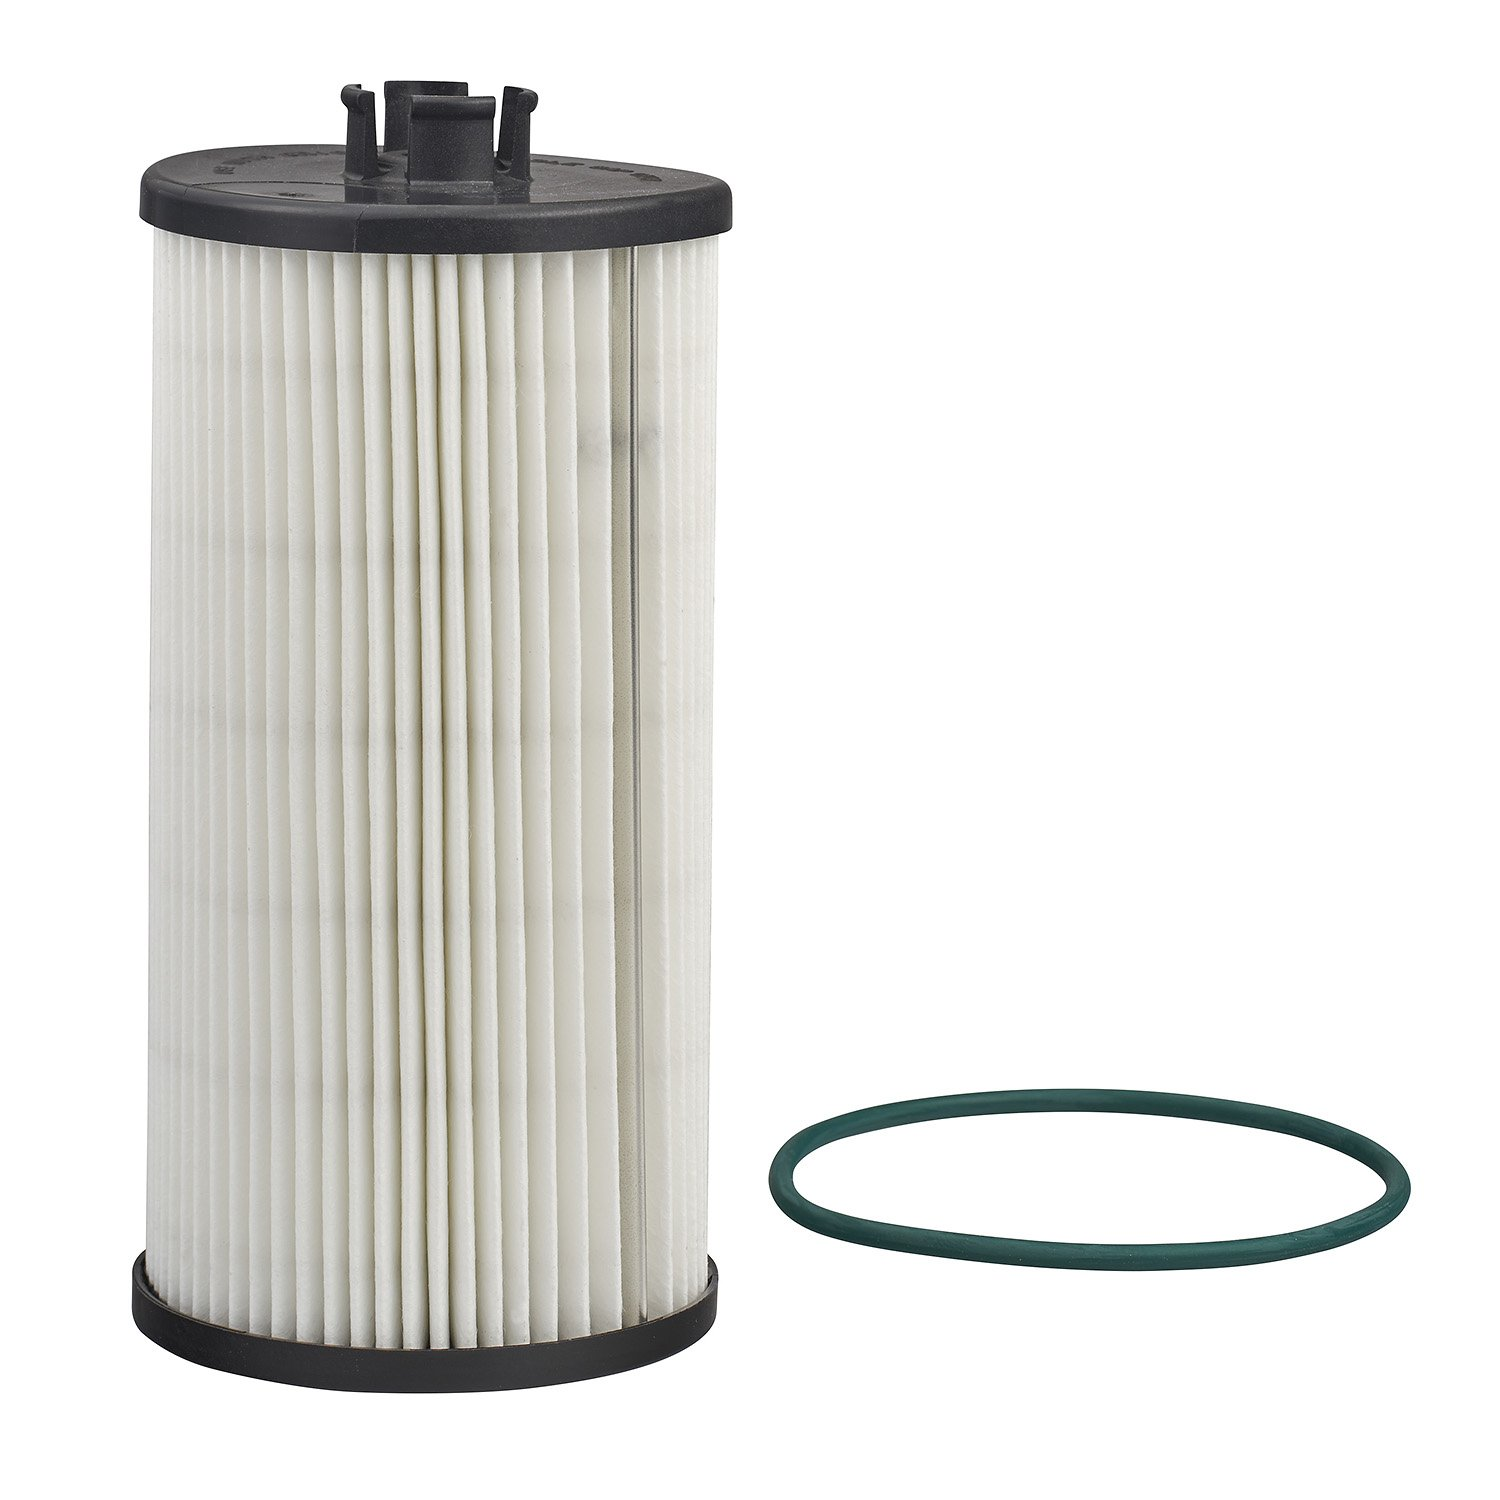 Purolator PBL45526 PurolatorBOSS Premium Oil Filter